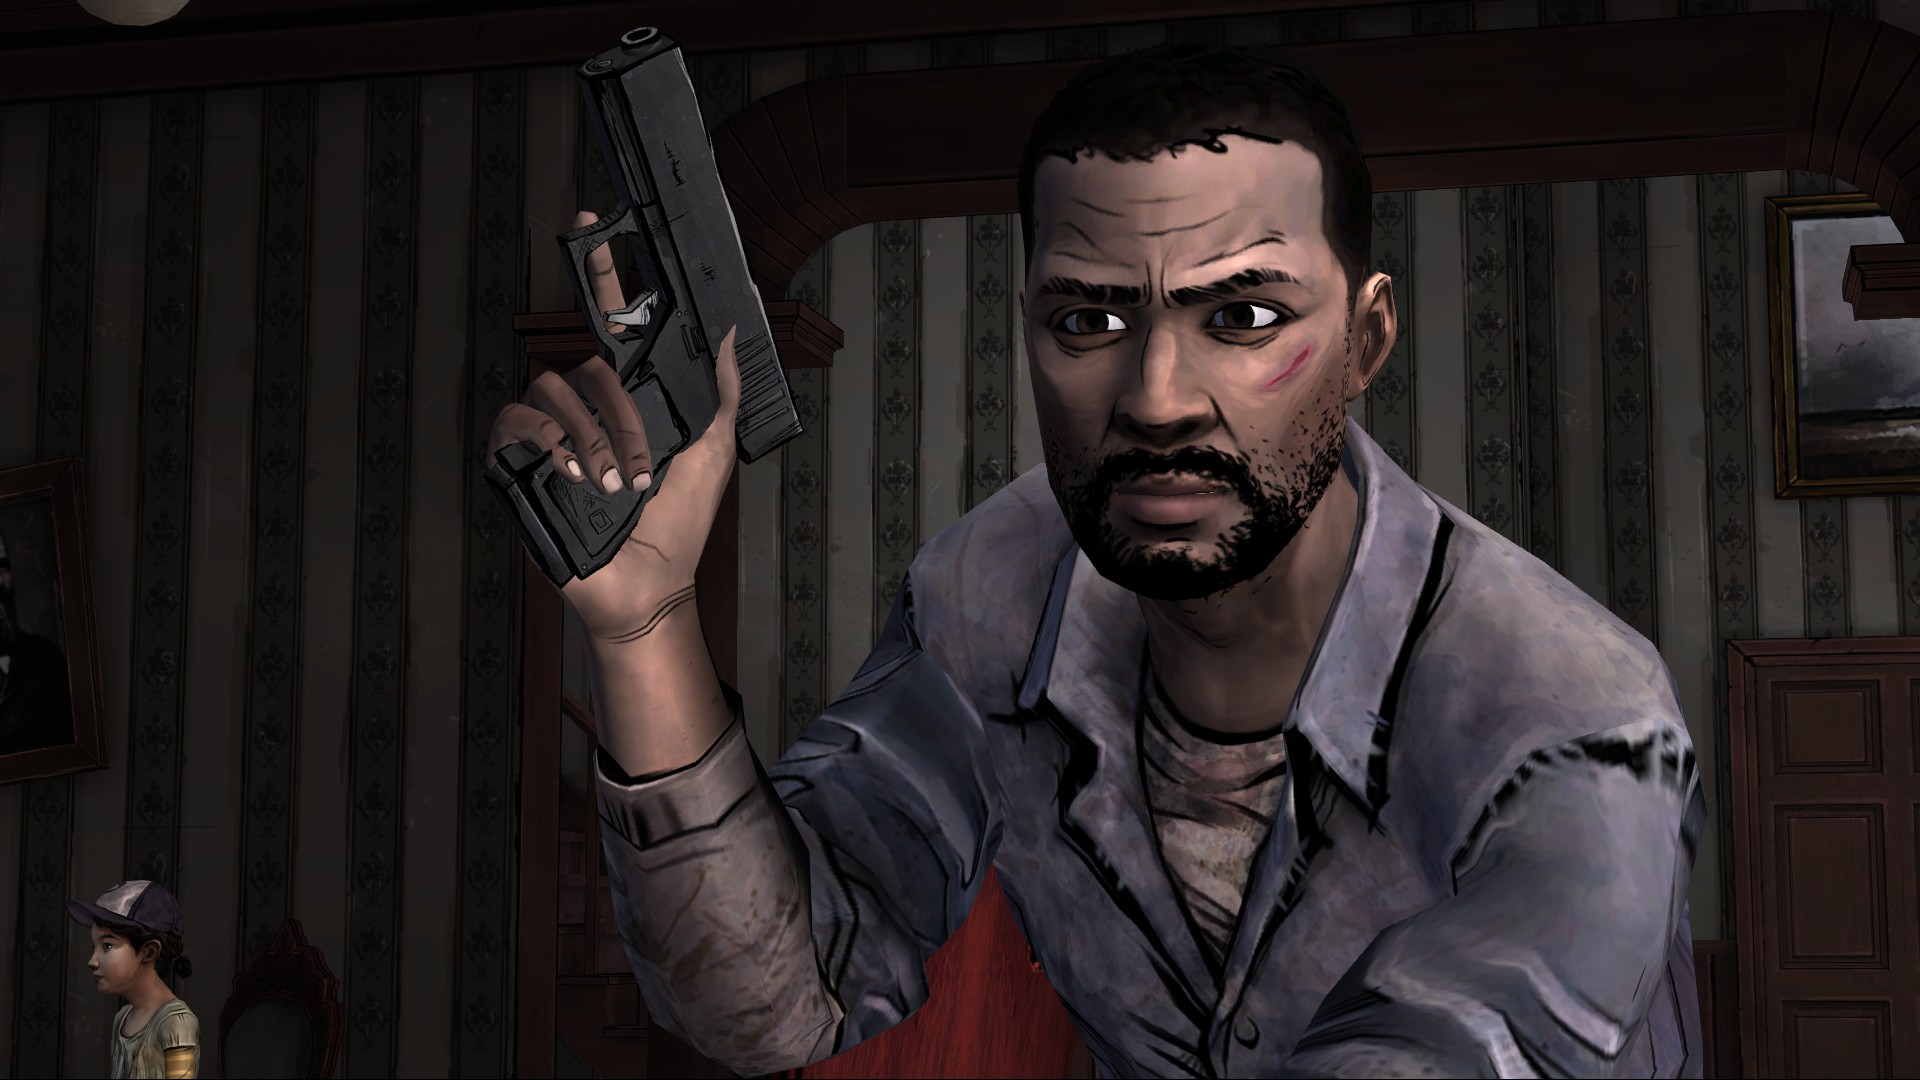 Joel (The Last of Us) VS Lee (The Walking Dead) : whowouldwin